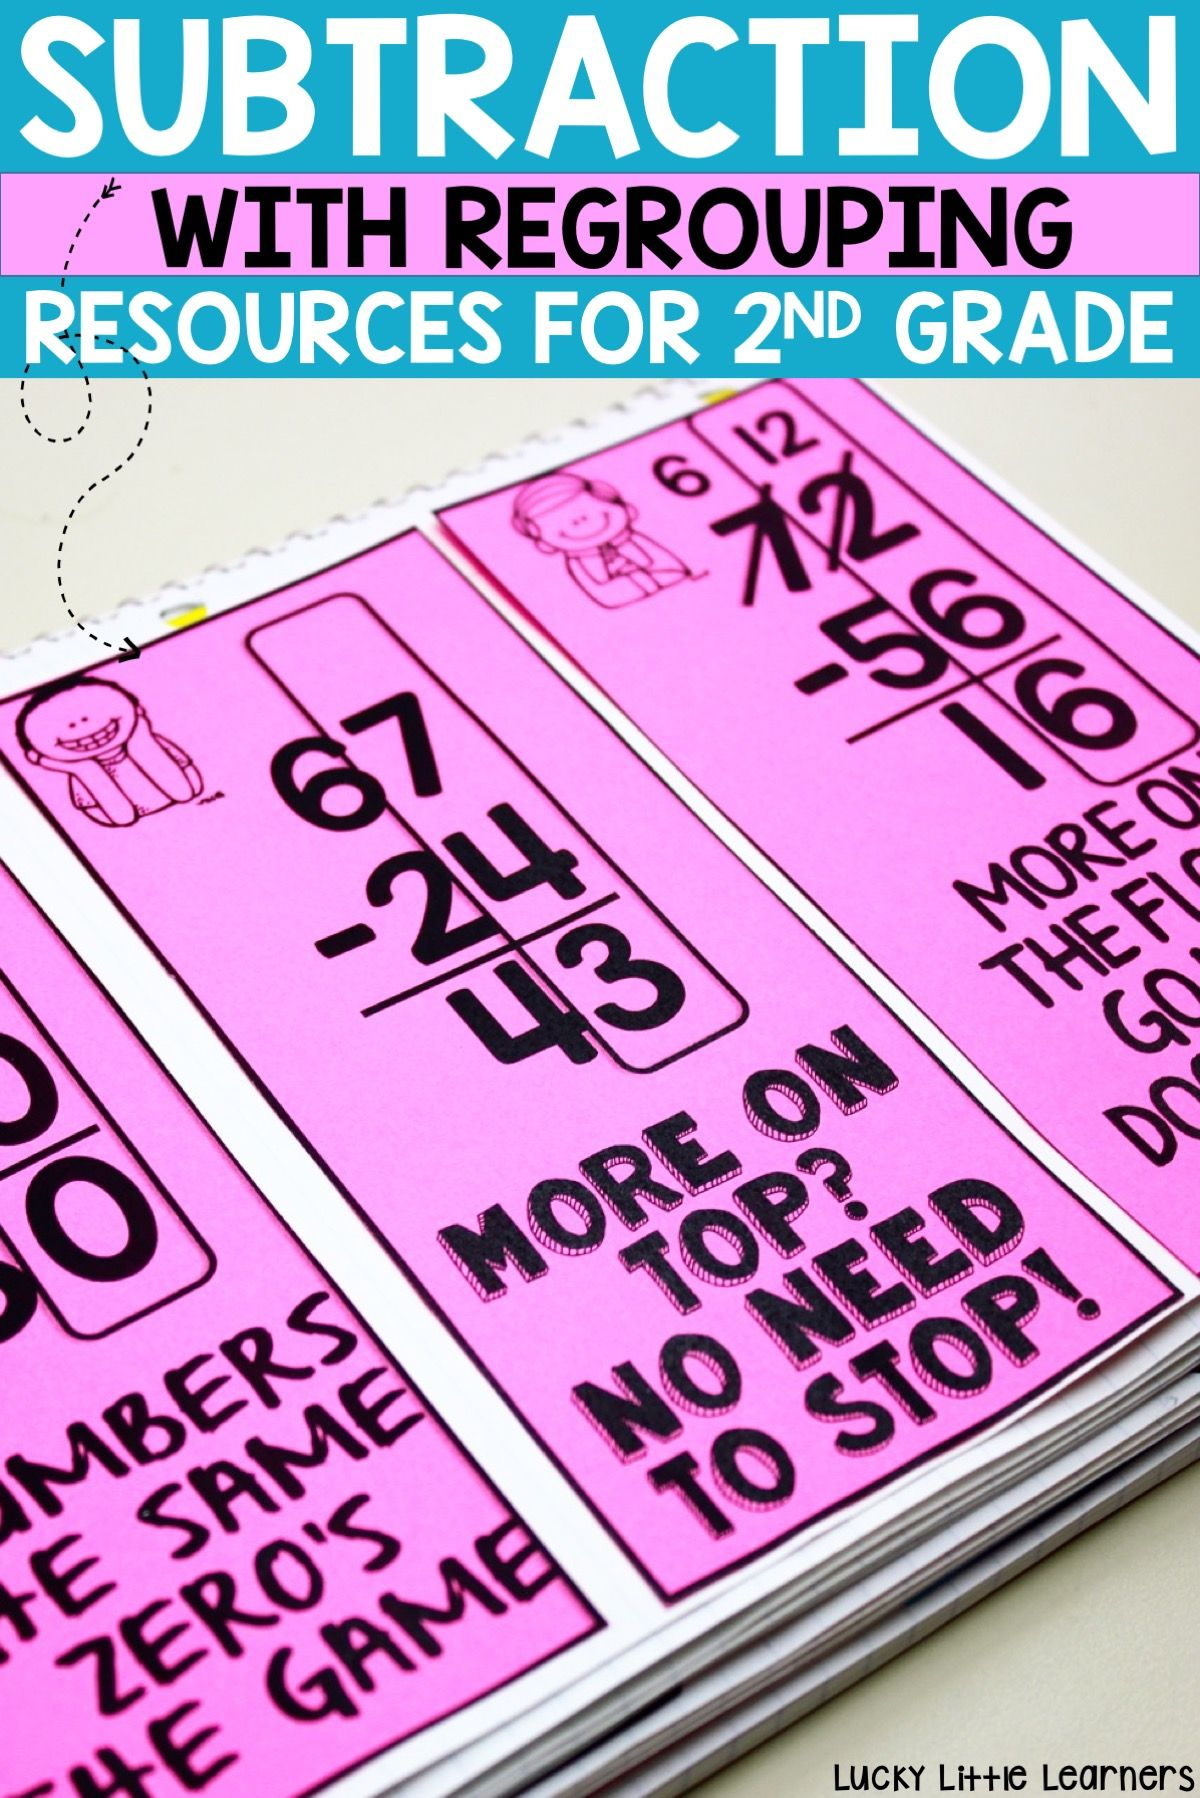 Everything You Need To Teach Subtraction With Regrouping In 2nd Grade